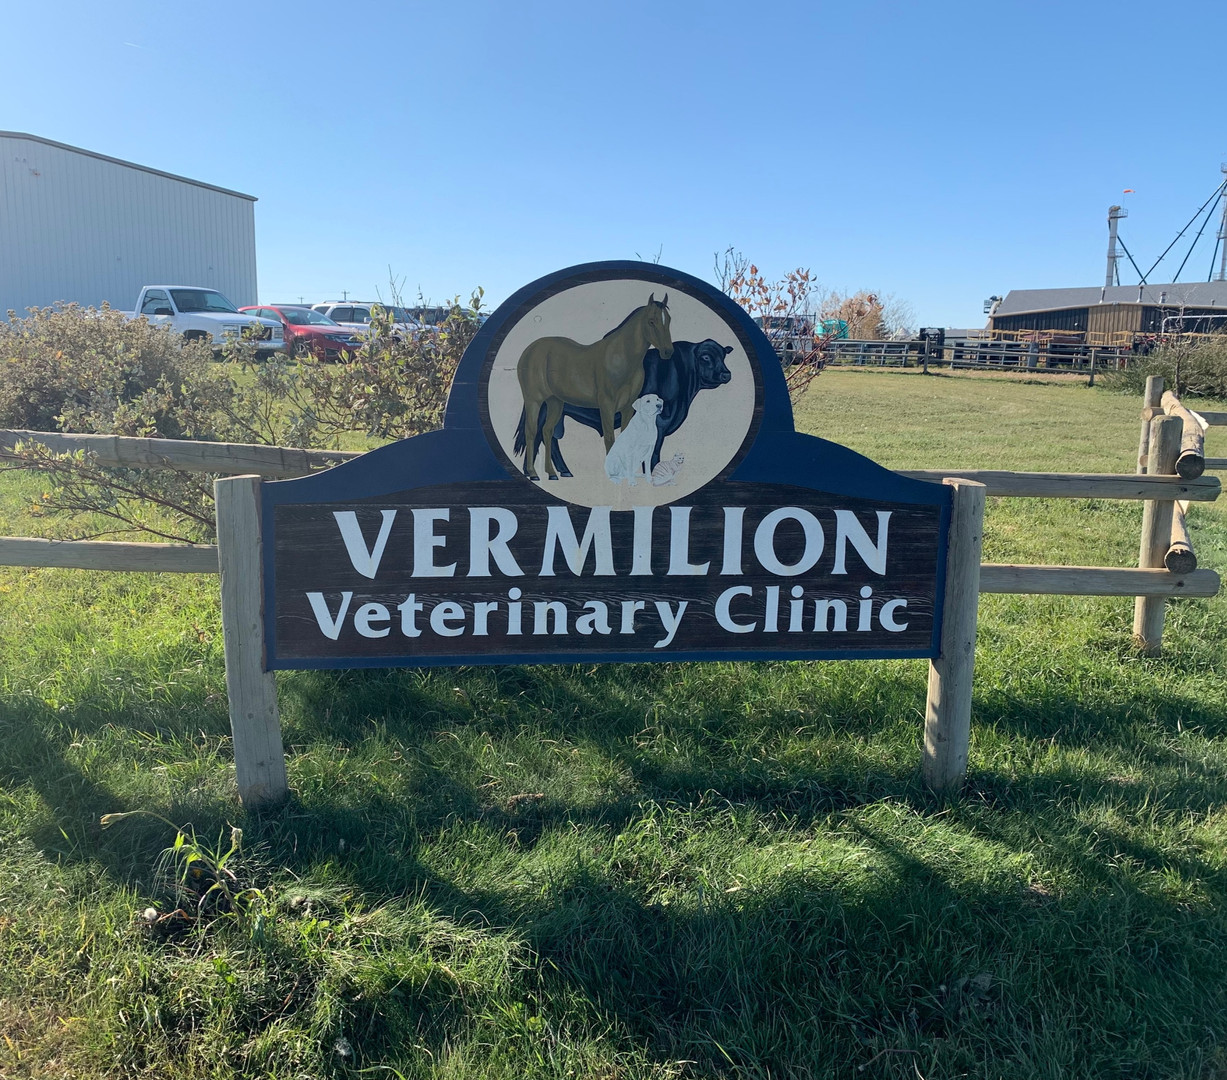 Vermilion Veterinary Clinic